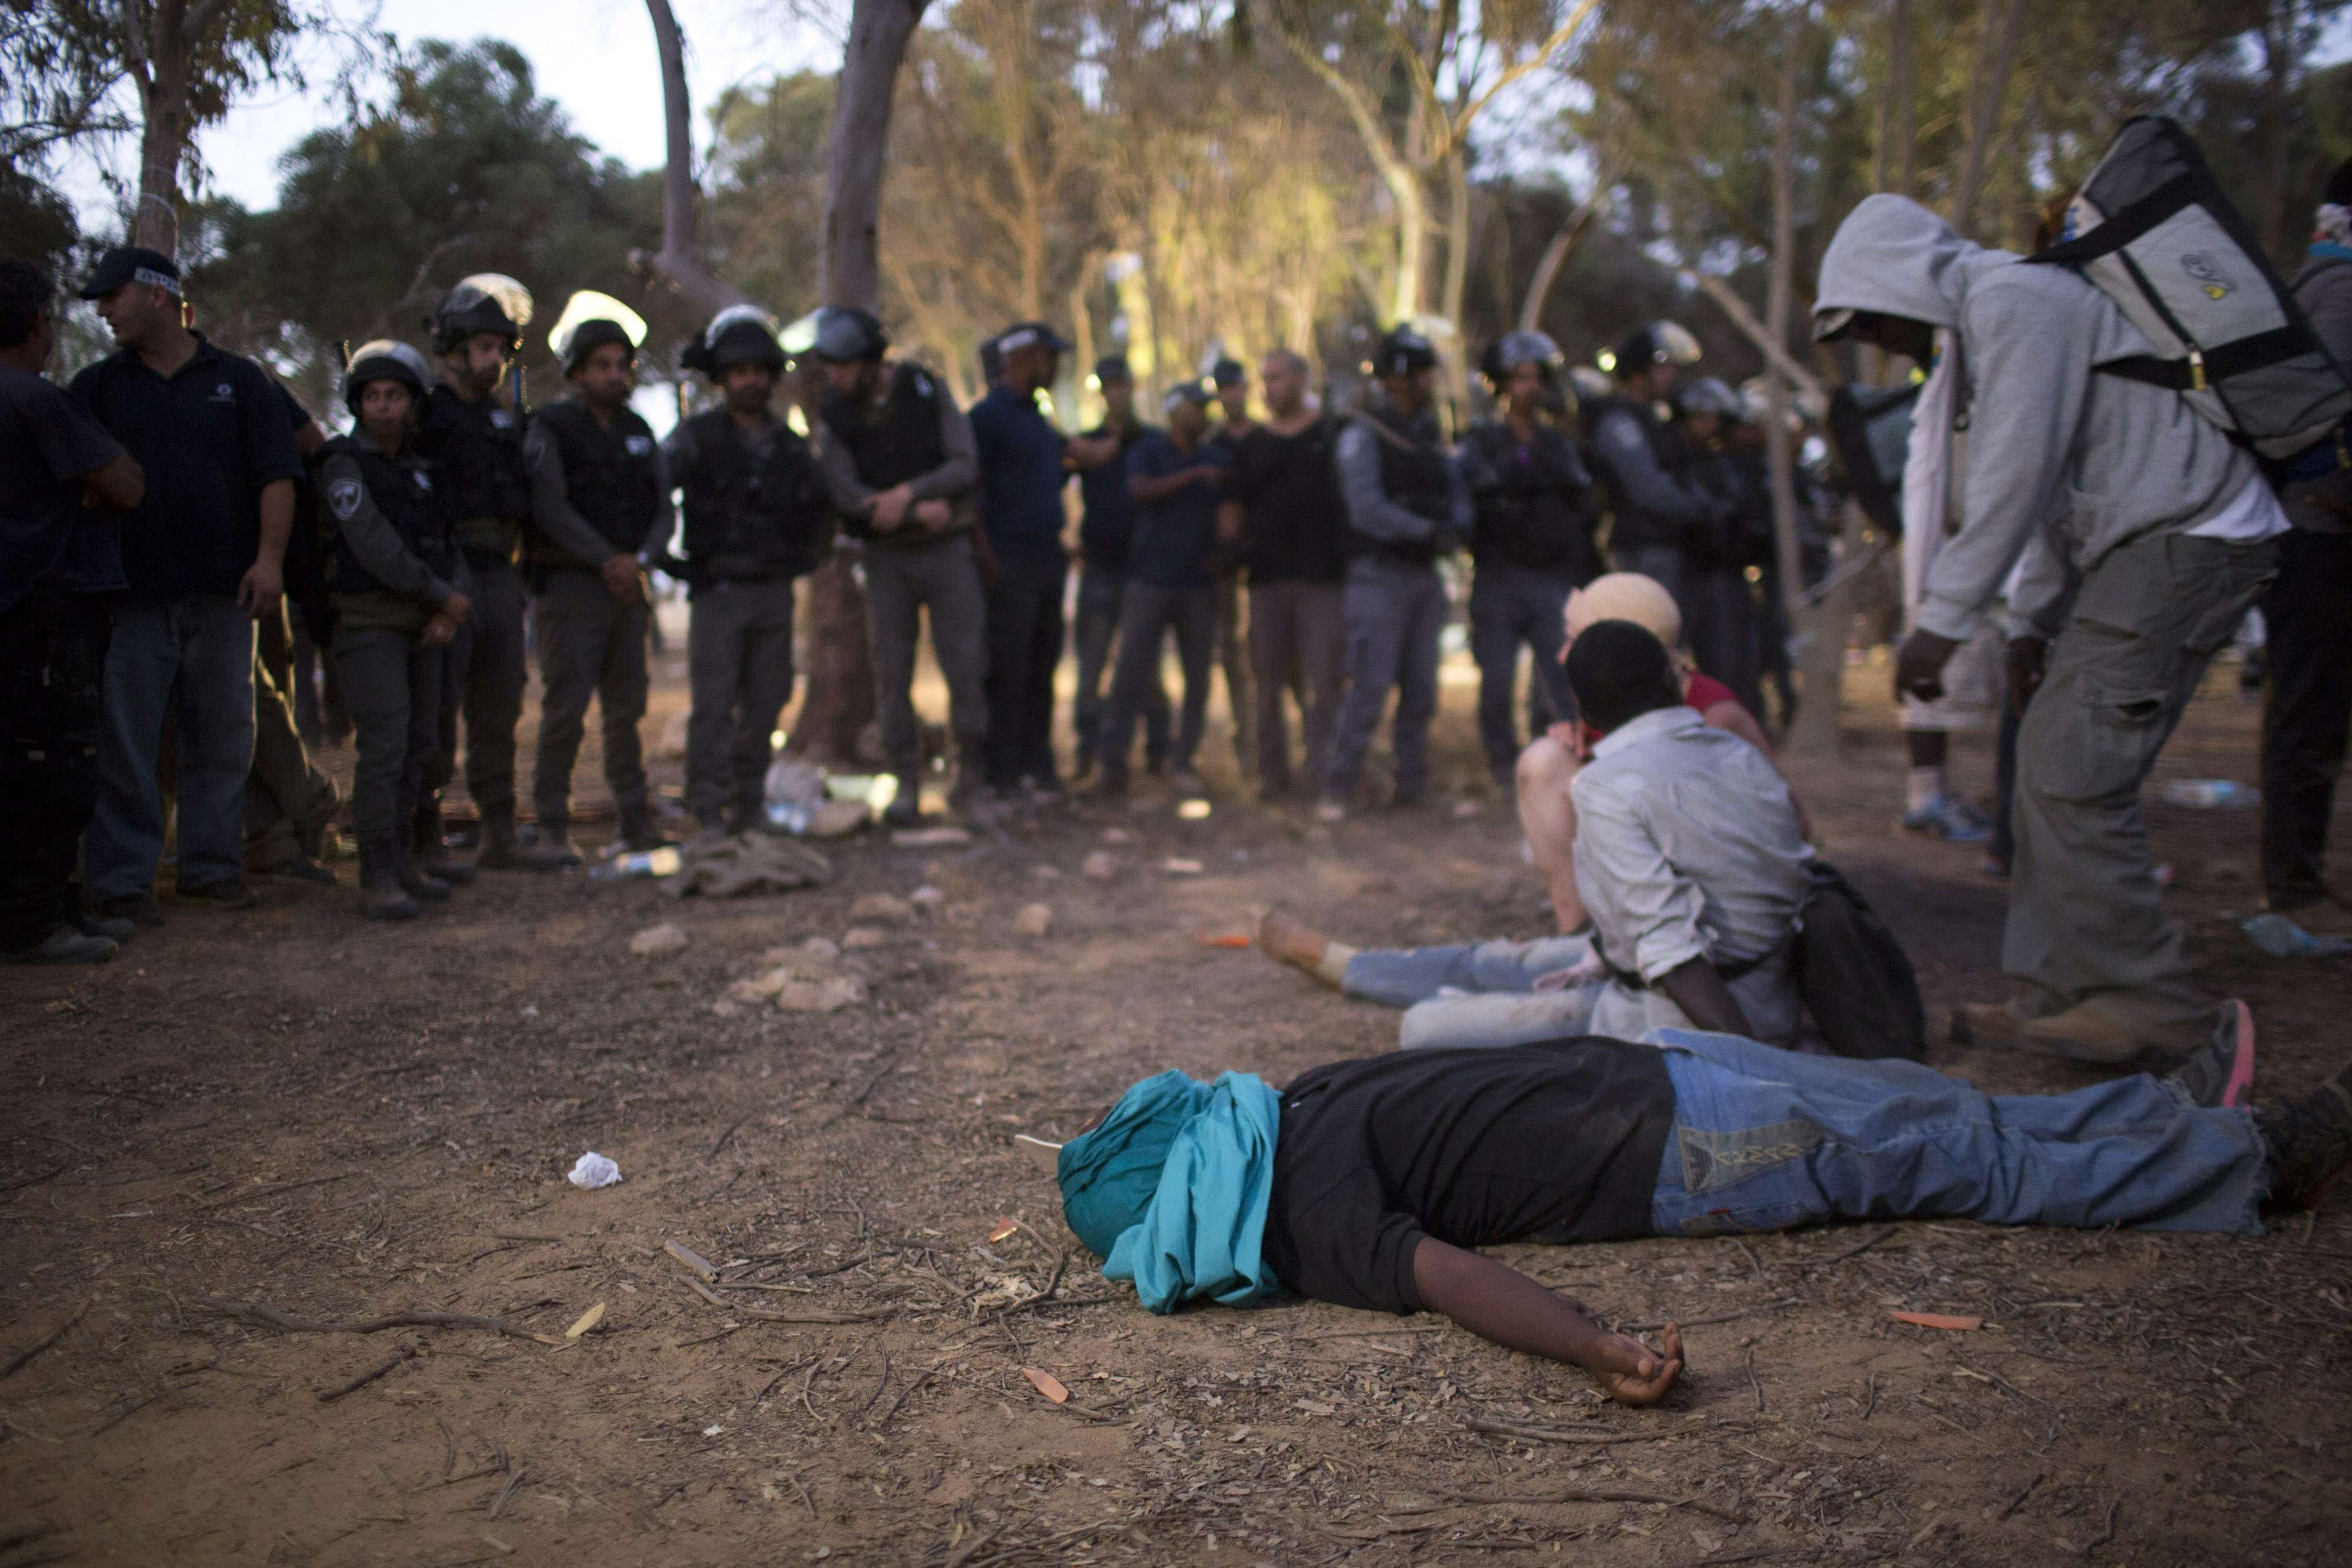 African immigrants in Israel stage protest